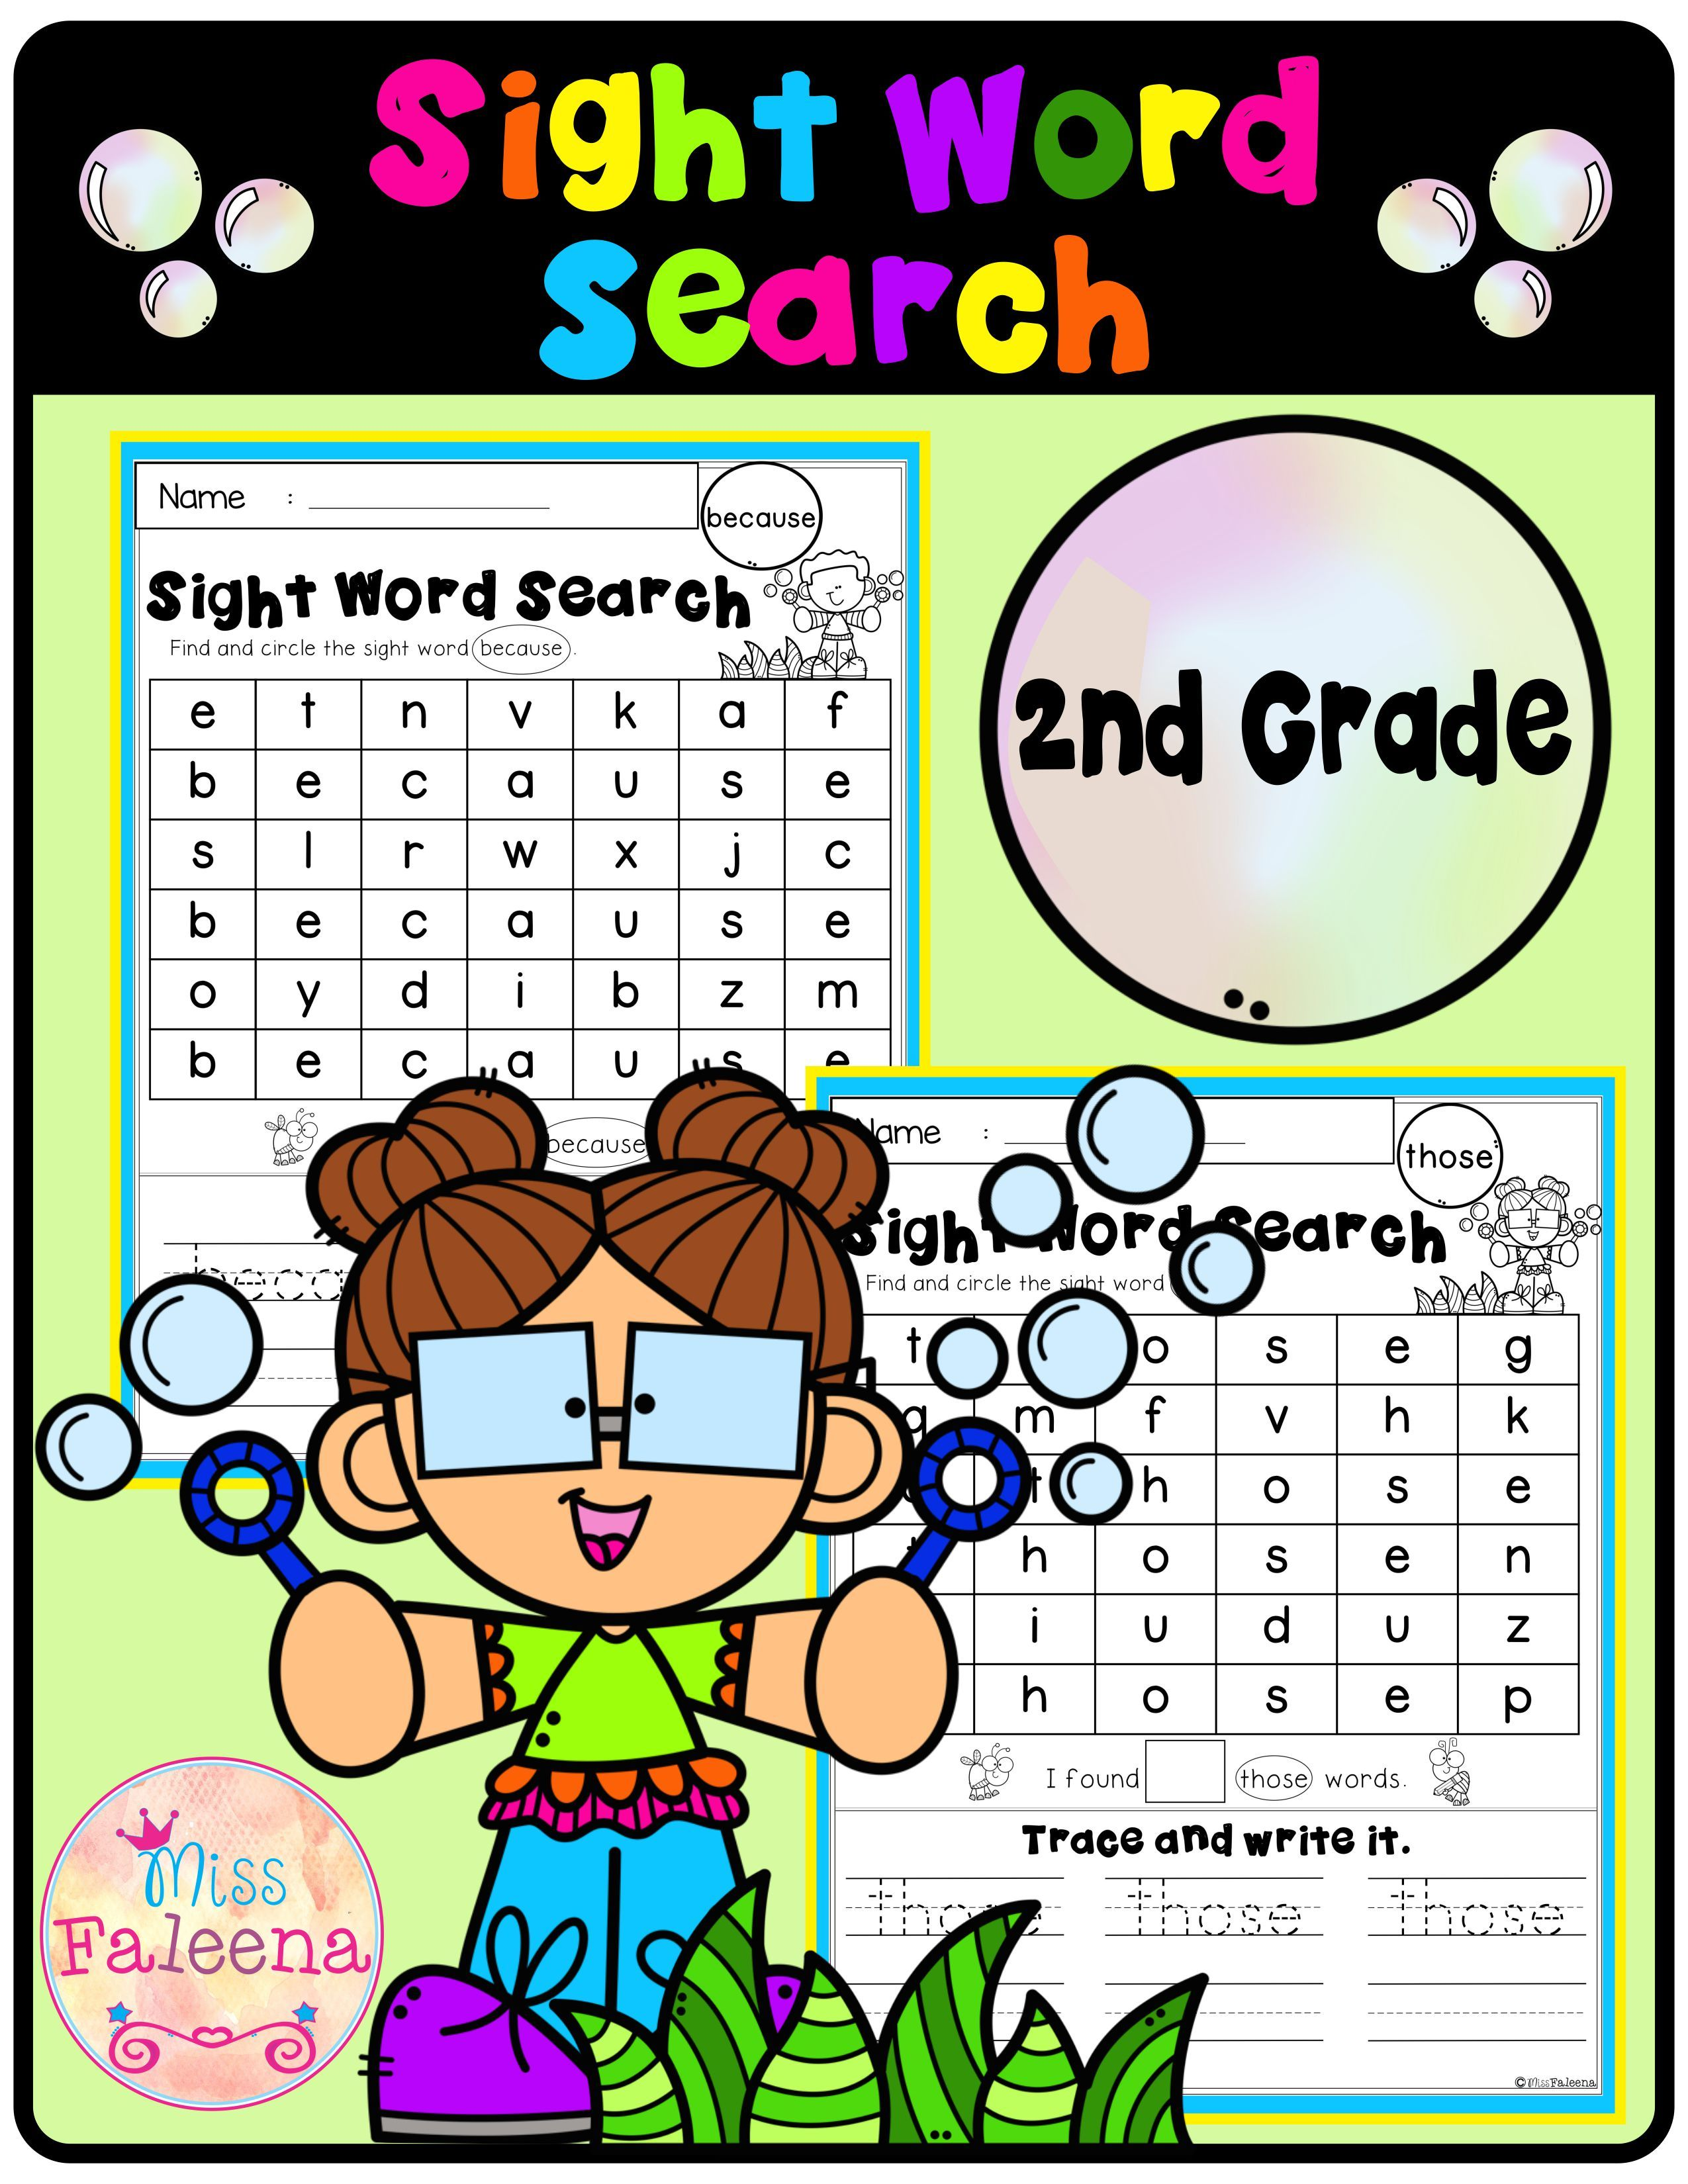 Sight Word Search Second Grade In